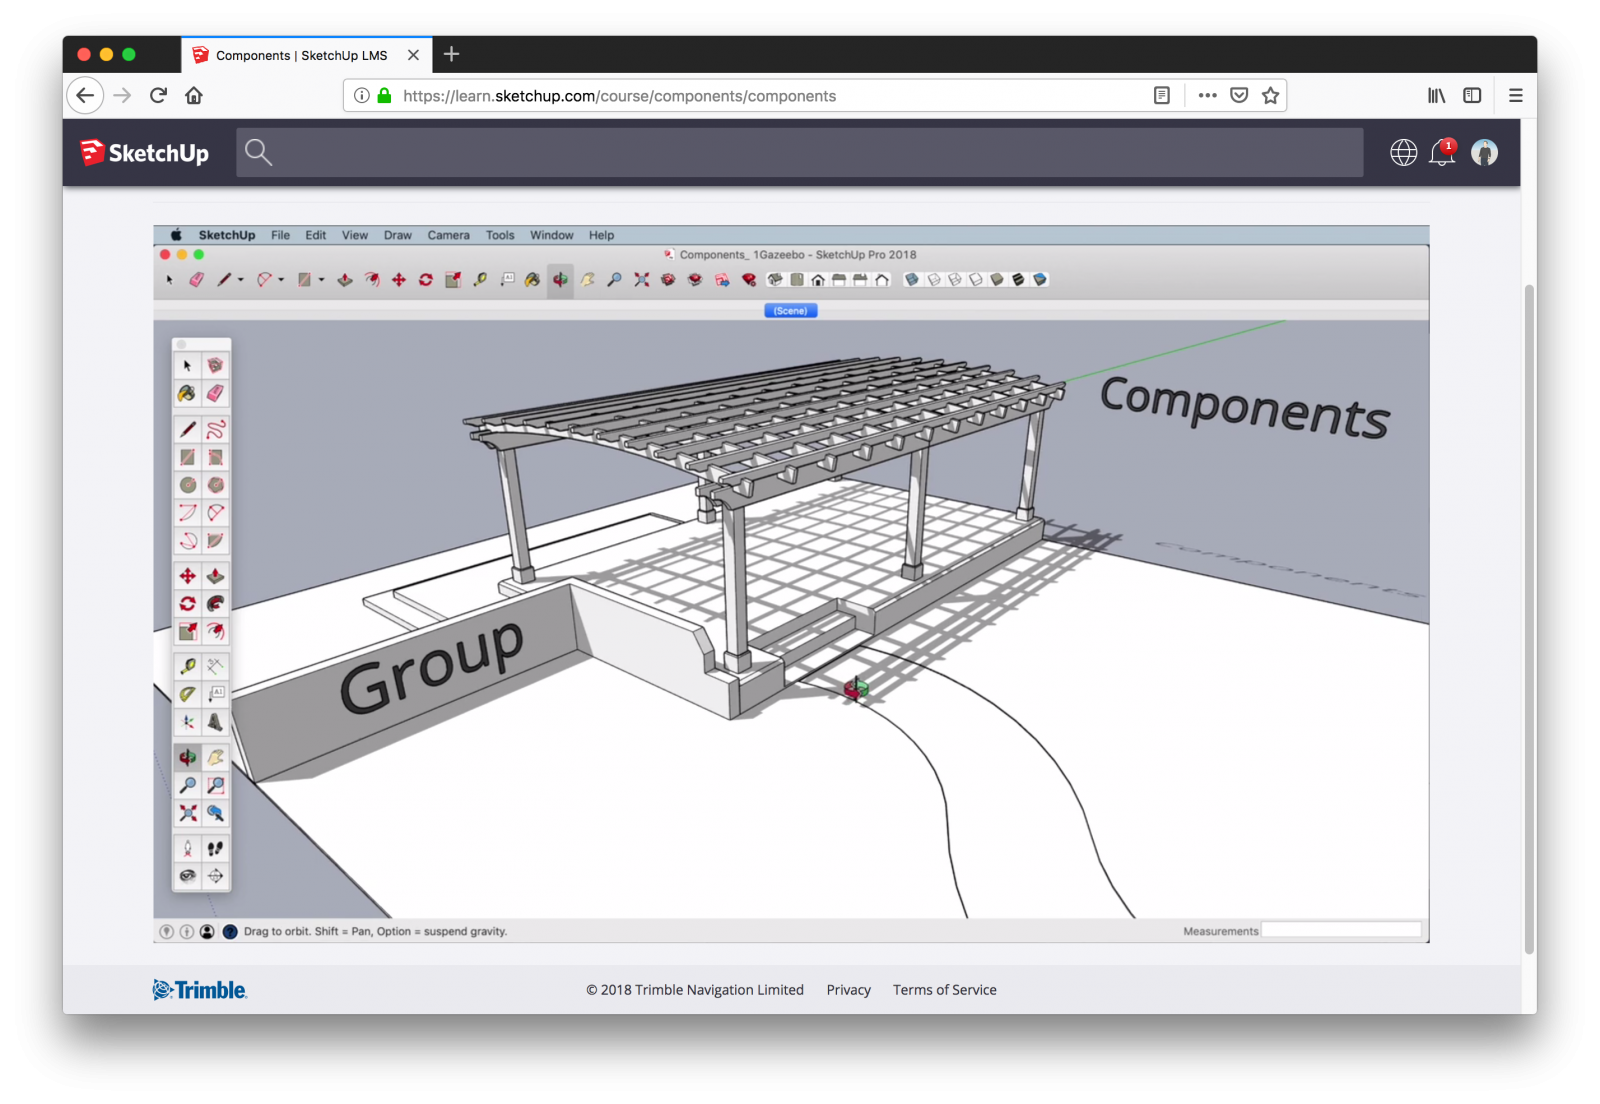 Learning components in SketchUp Campus